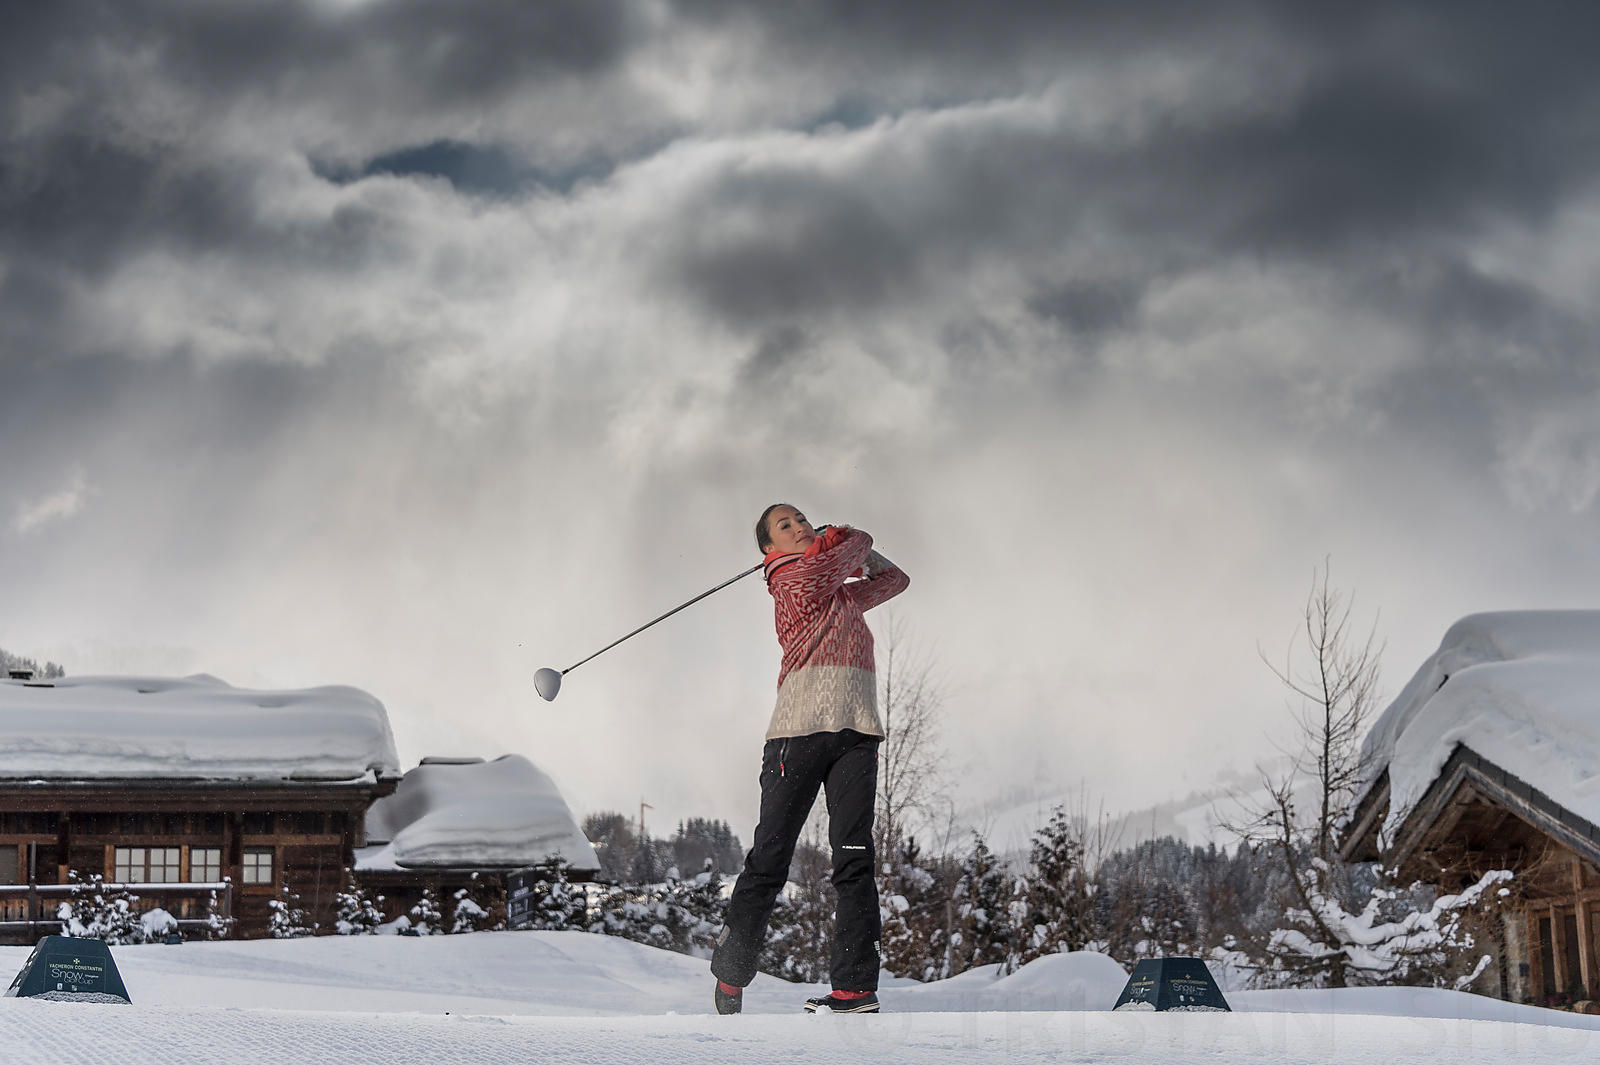 Vacheron Constantin Snow Golf Cup 2013